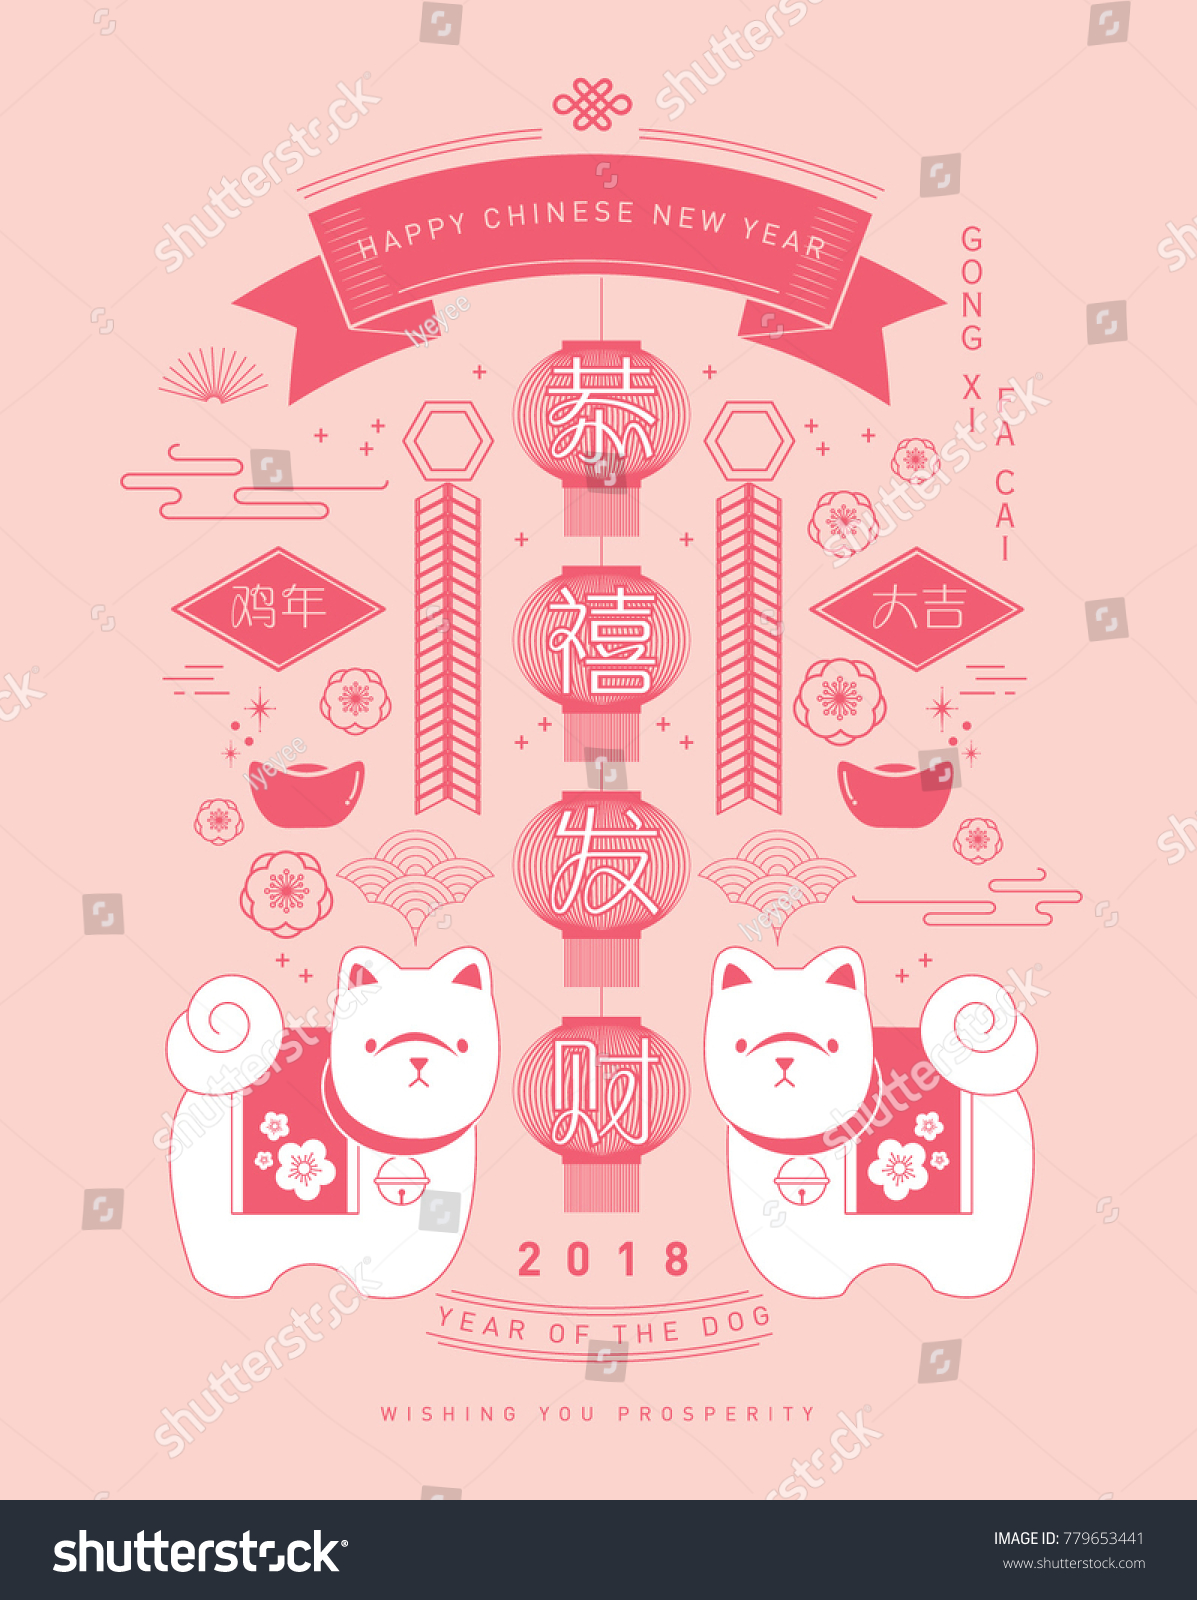 Chinese new year dog greetings template stock vector 779653441 chinese new year of the dog greetings template vectorillustration with chinese characters that mean m4hsunfo